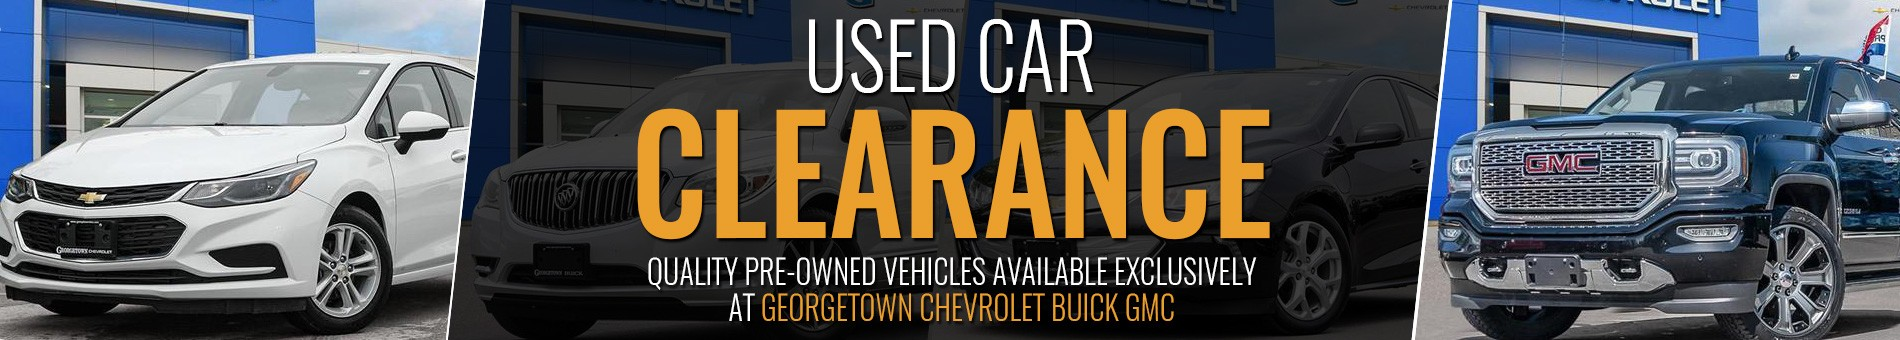 Outstanding Used Cars, Trucks and SUVs in Georgetown Ontario at Clearance prices from the Pre-Owned Vehicles department at Georgetown Chevrolet Buick GMC